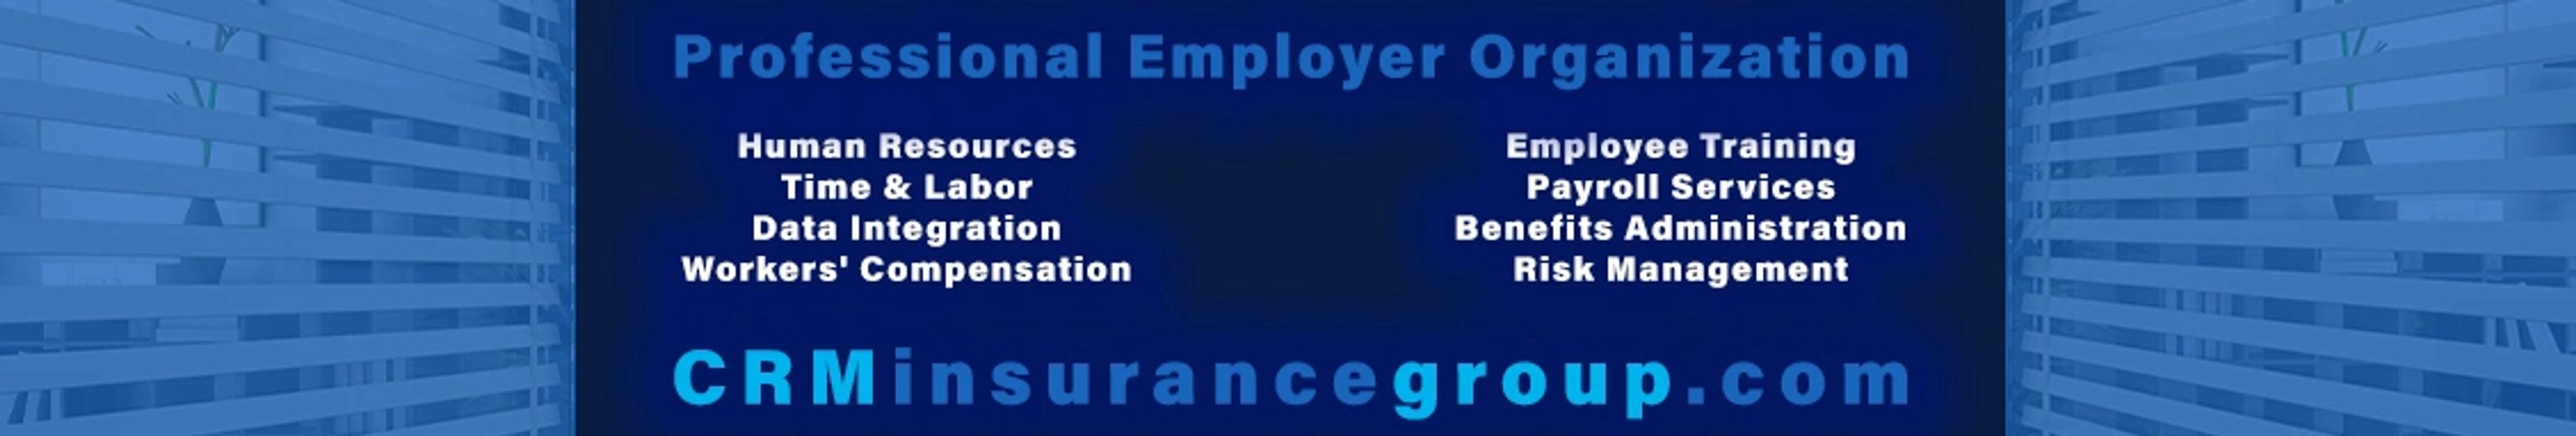 Professional Employer Organization (PEO) and Insurance Agent on Long Island, NY